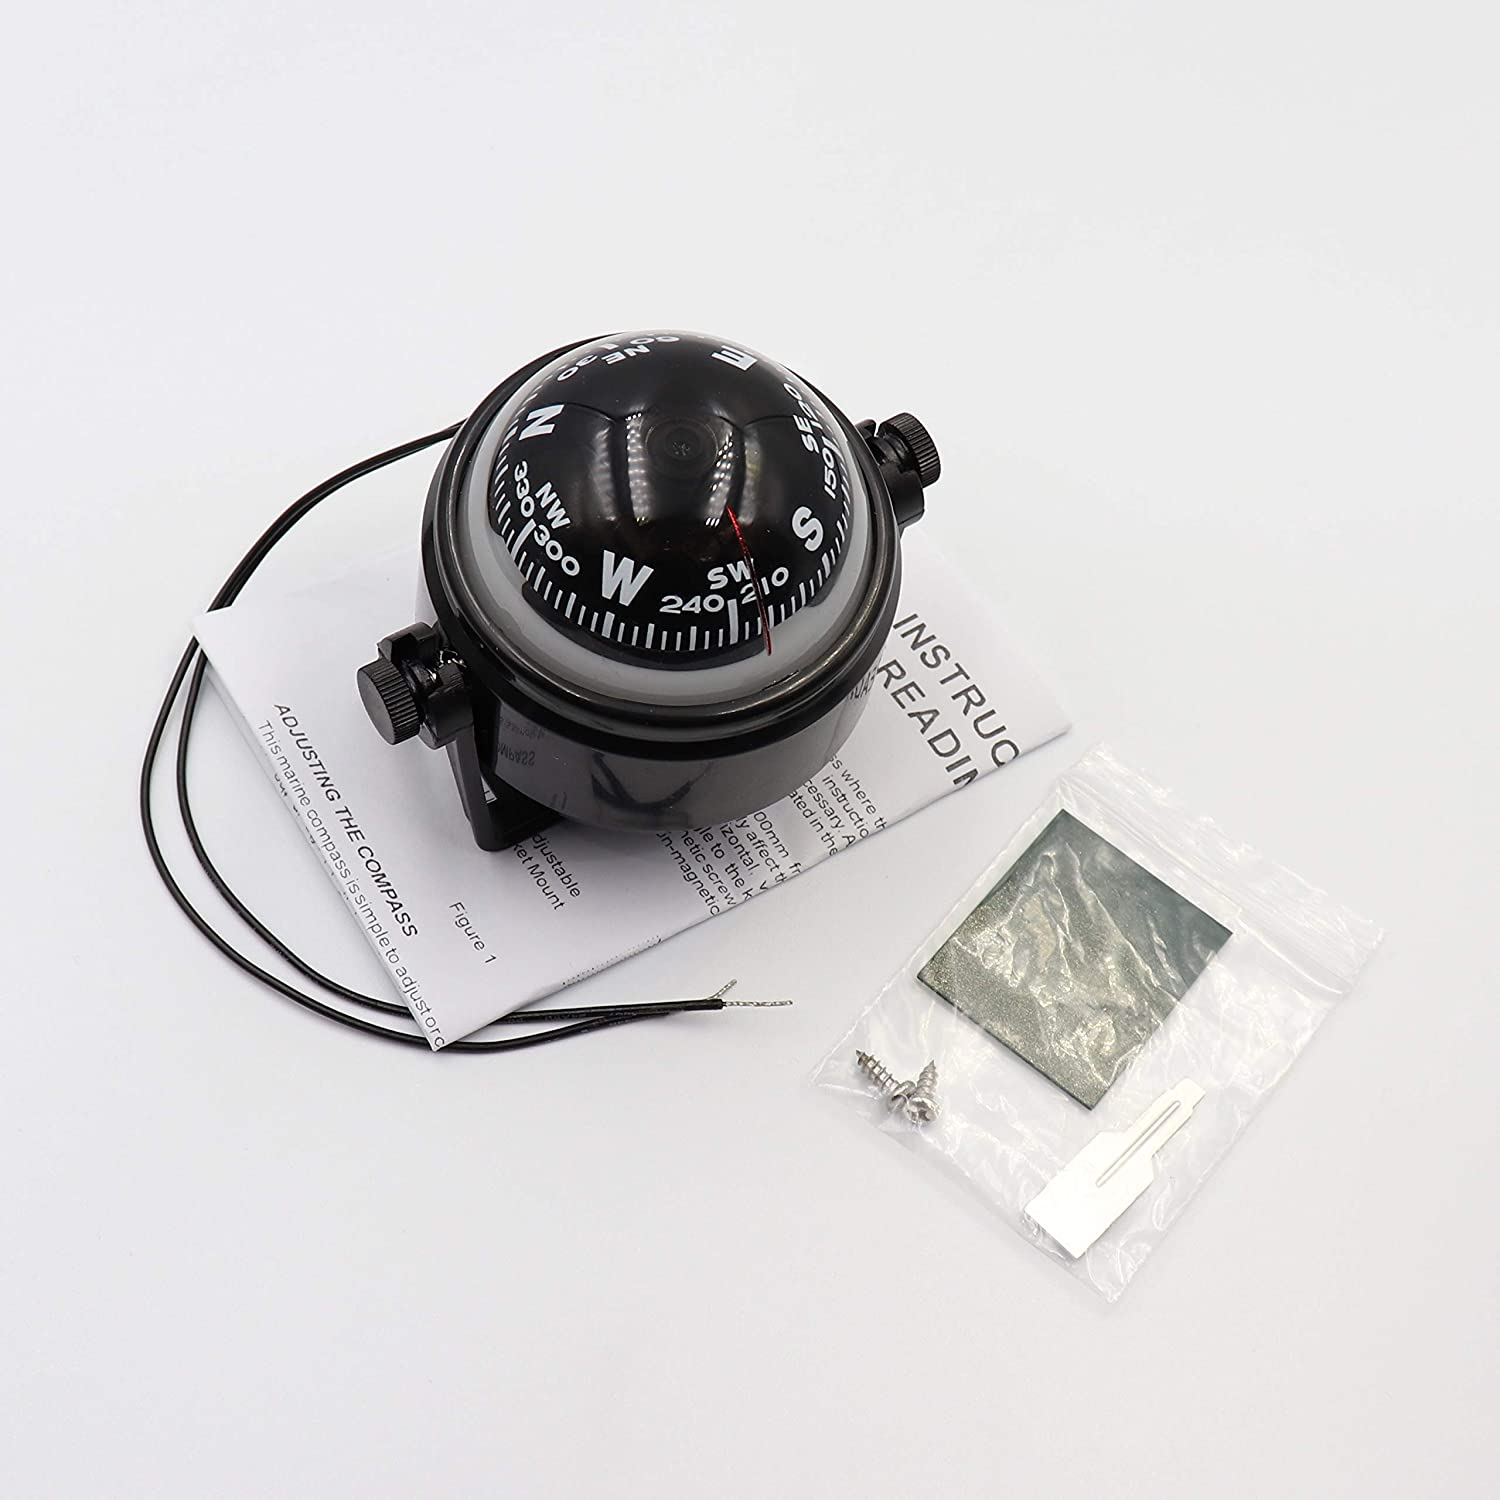 DETUCK Boat Compass Dashboard Marine Compass for Boat Compass Dash Mount Night Lighting : Sports & Outdoors